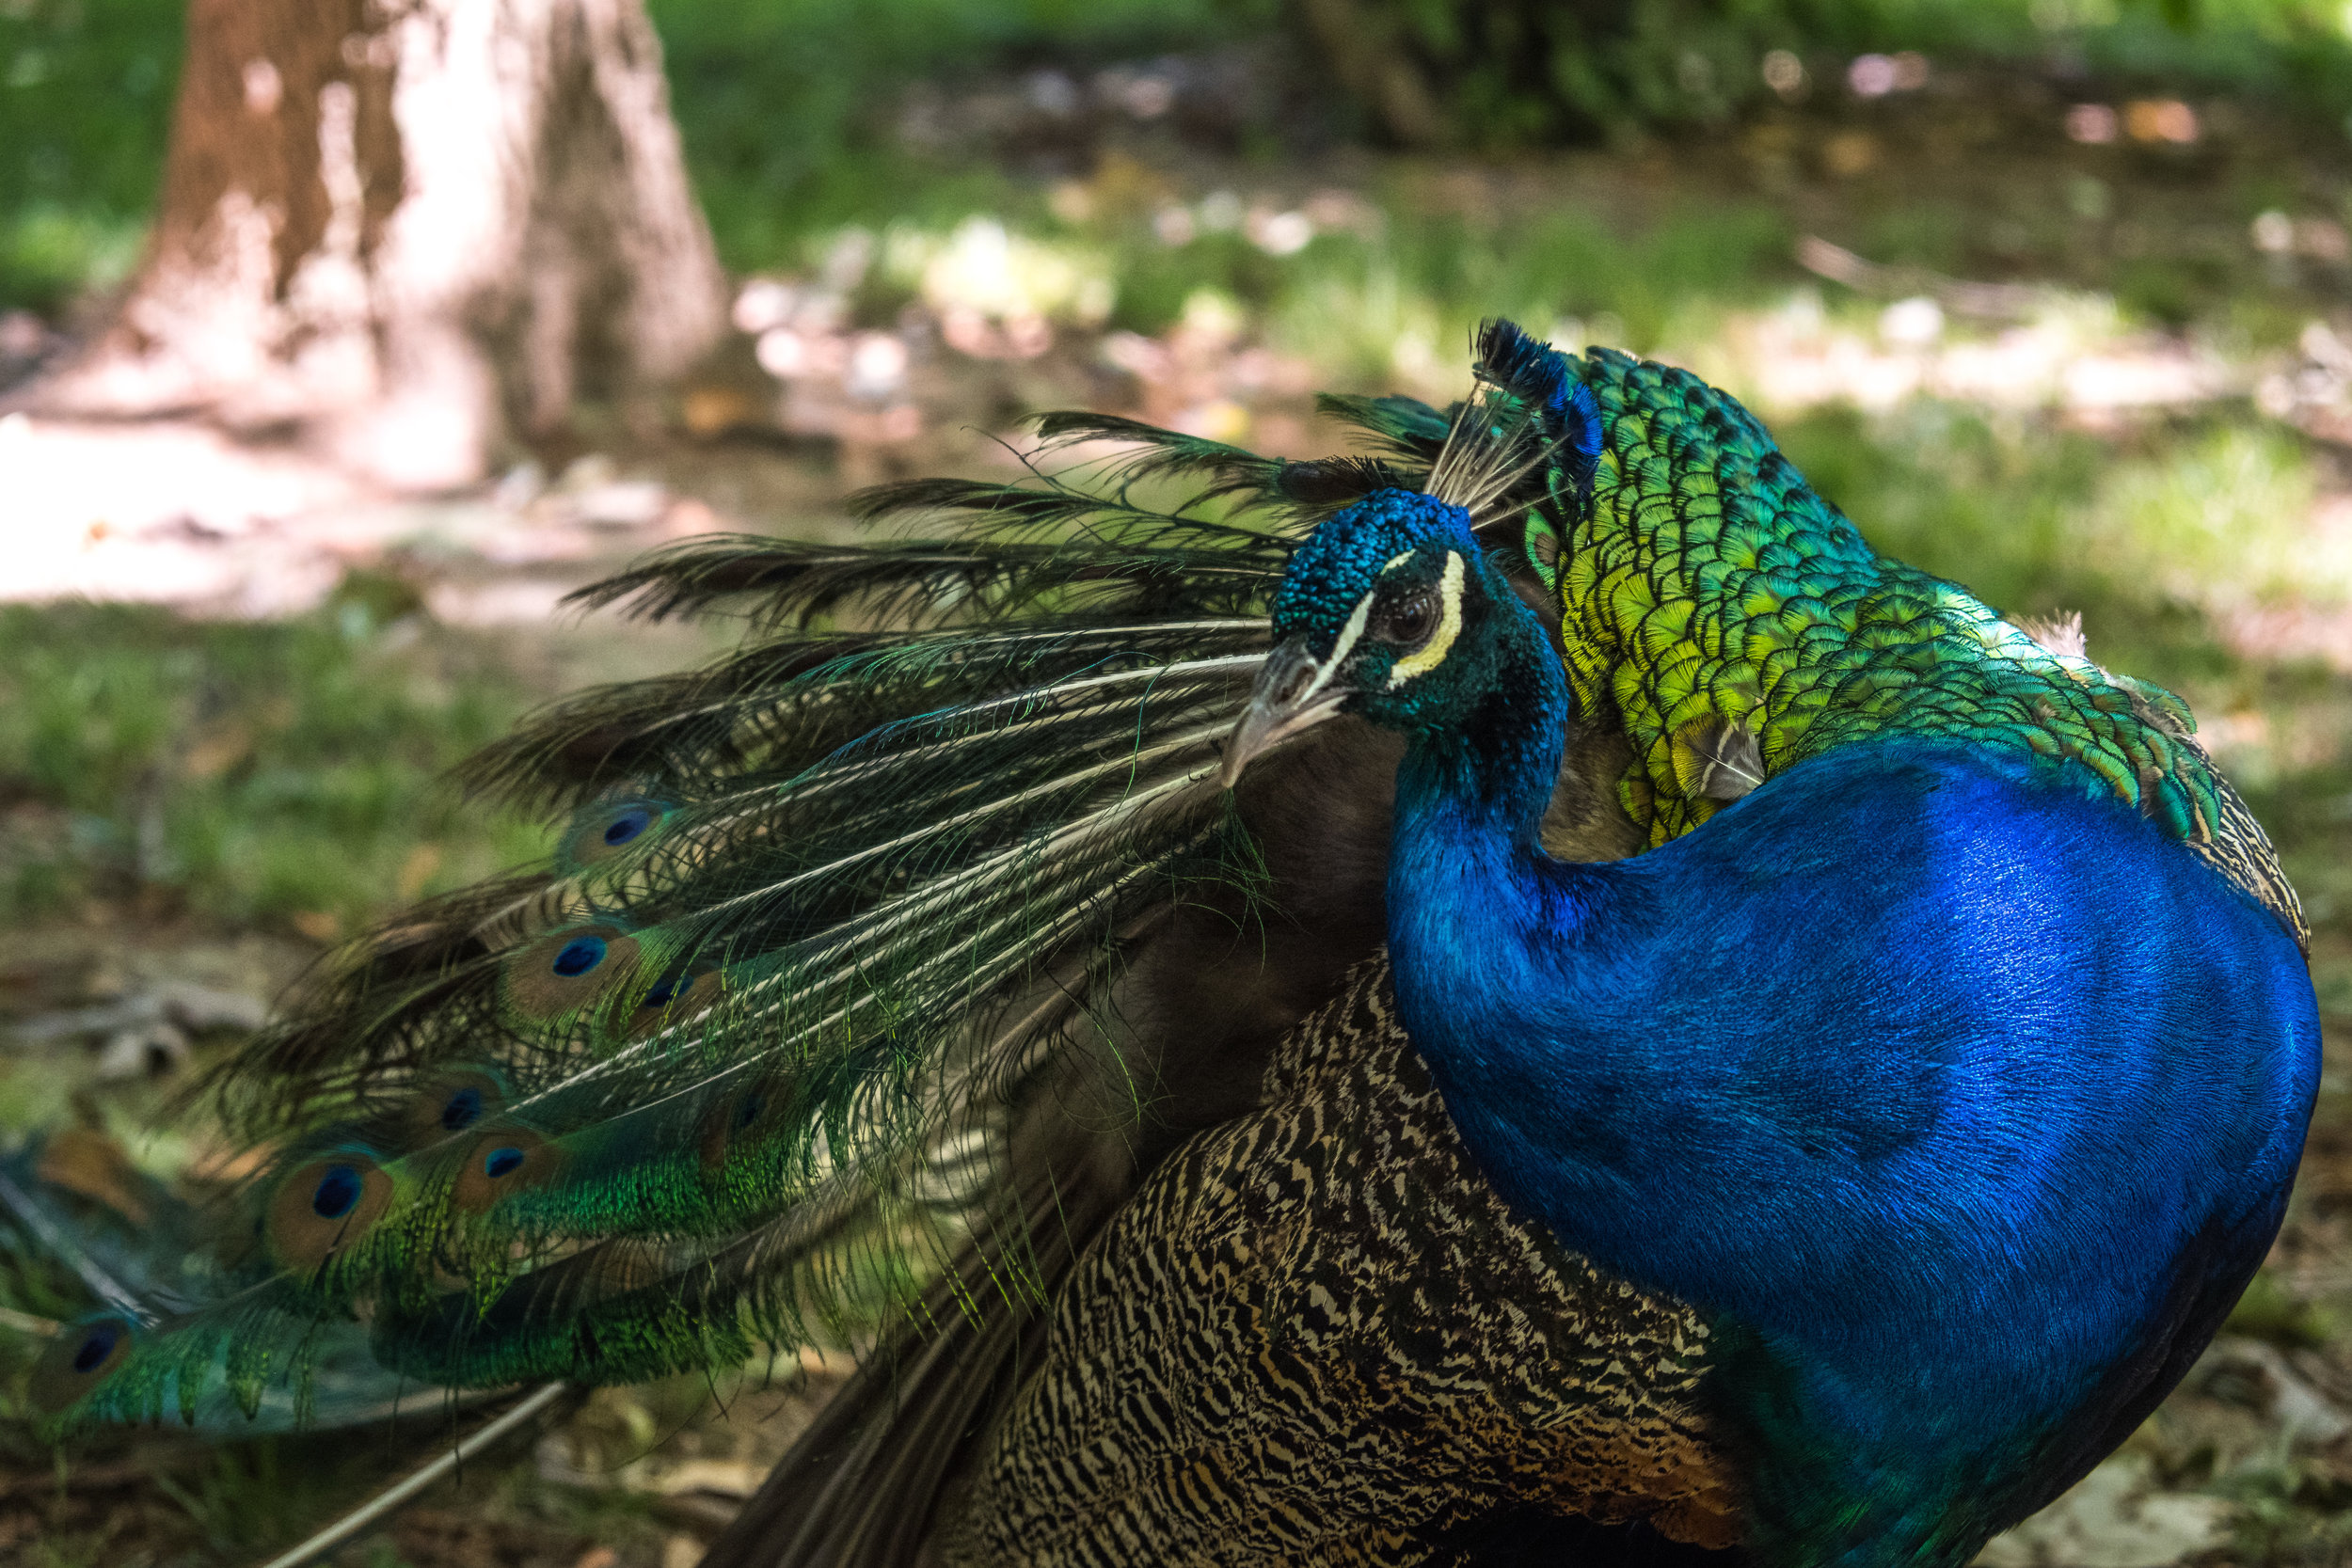 one of the many elegant peacocks roaming the grounds